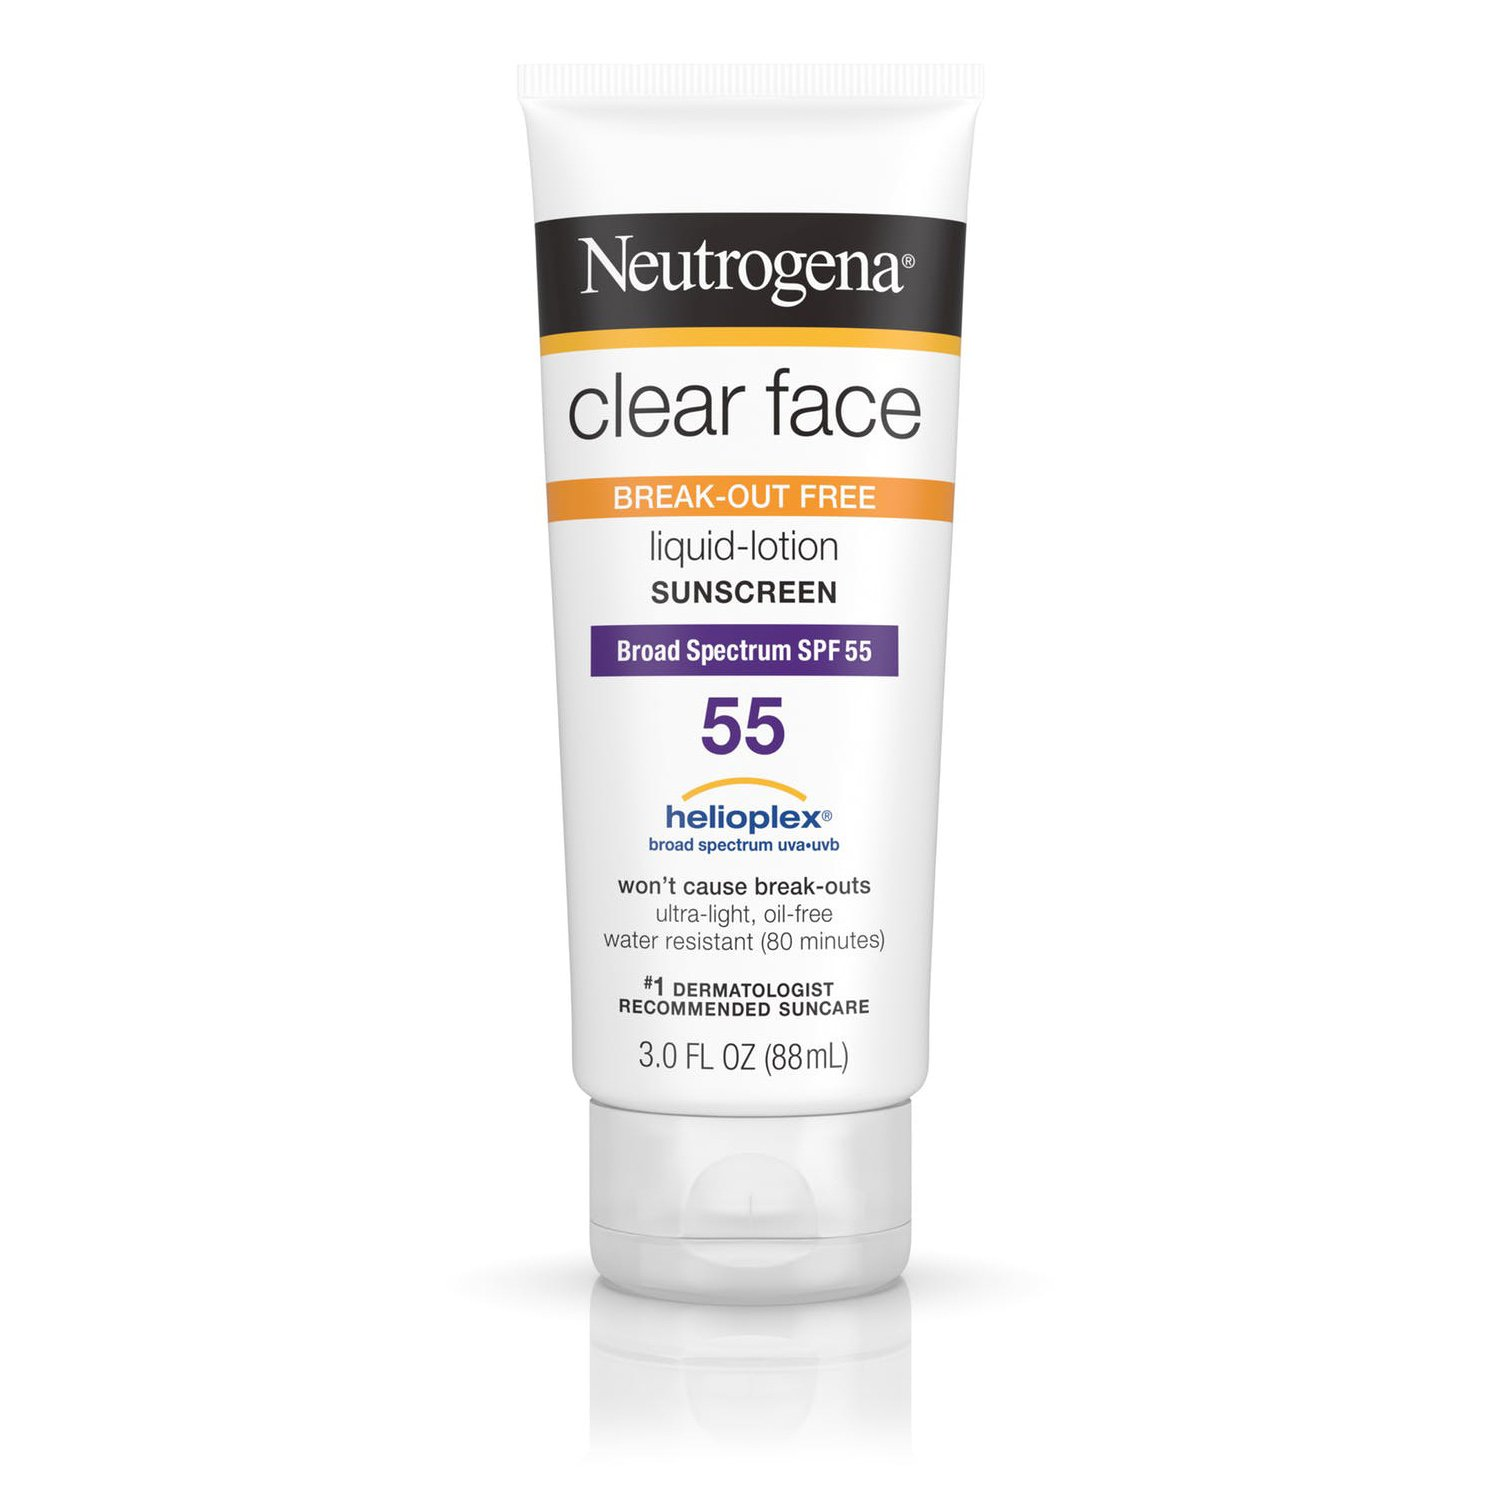 Neutrogena Clear Face Break-Out Free Liquid Lotion Sunscreen Broad Spectrum SPF 55(88ml)